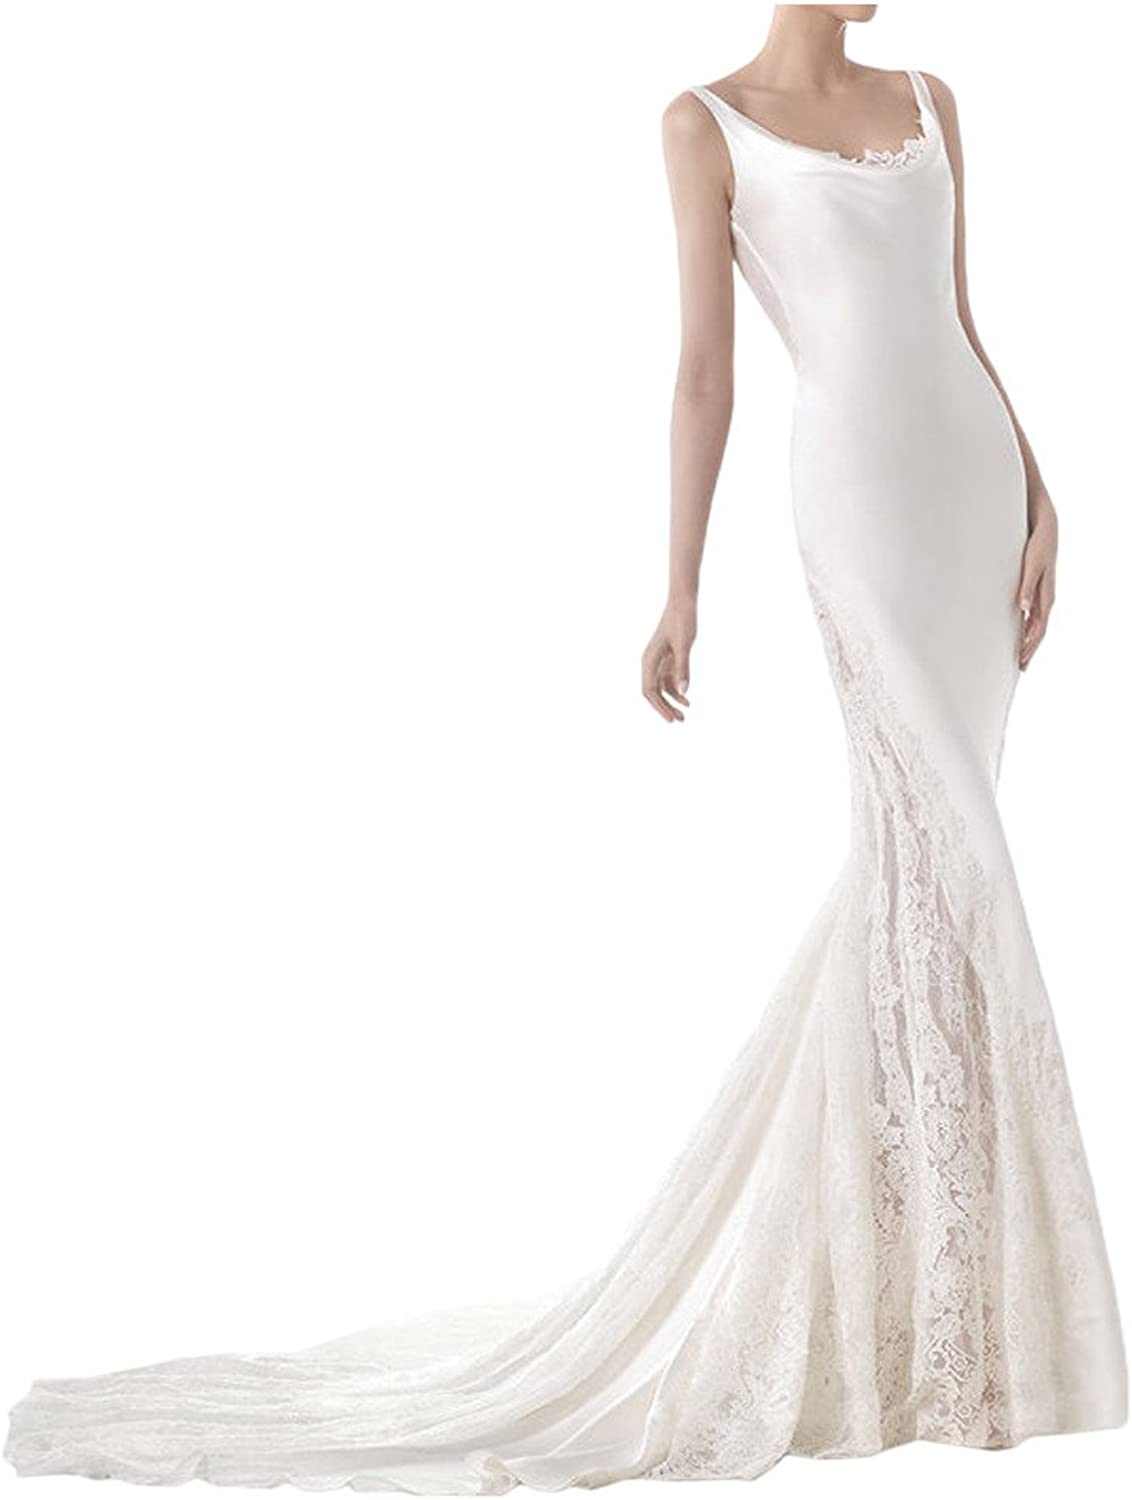 MILANO BRIDE 2016 White Wedding Dress For Bride Sheath Scoop neck Backless Lace